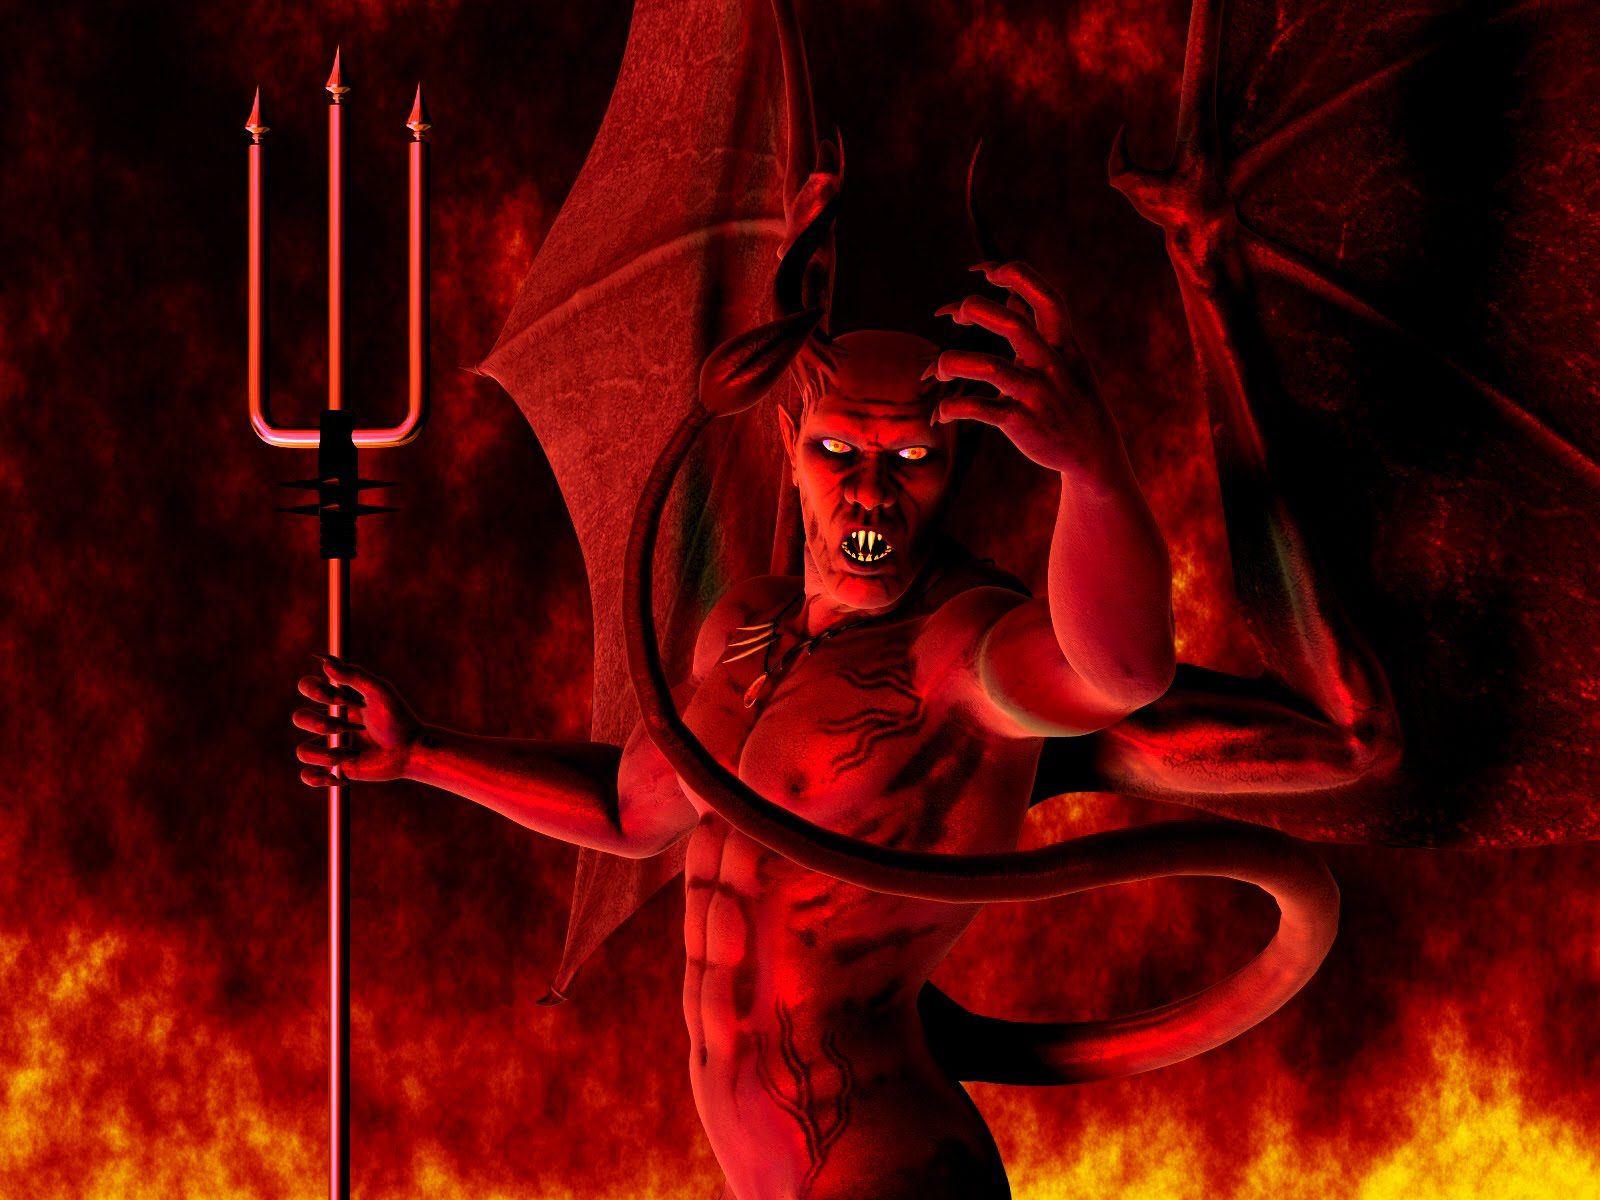 Devil HD wallpapers, Desktop wallpaper - most viewed